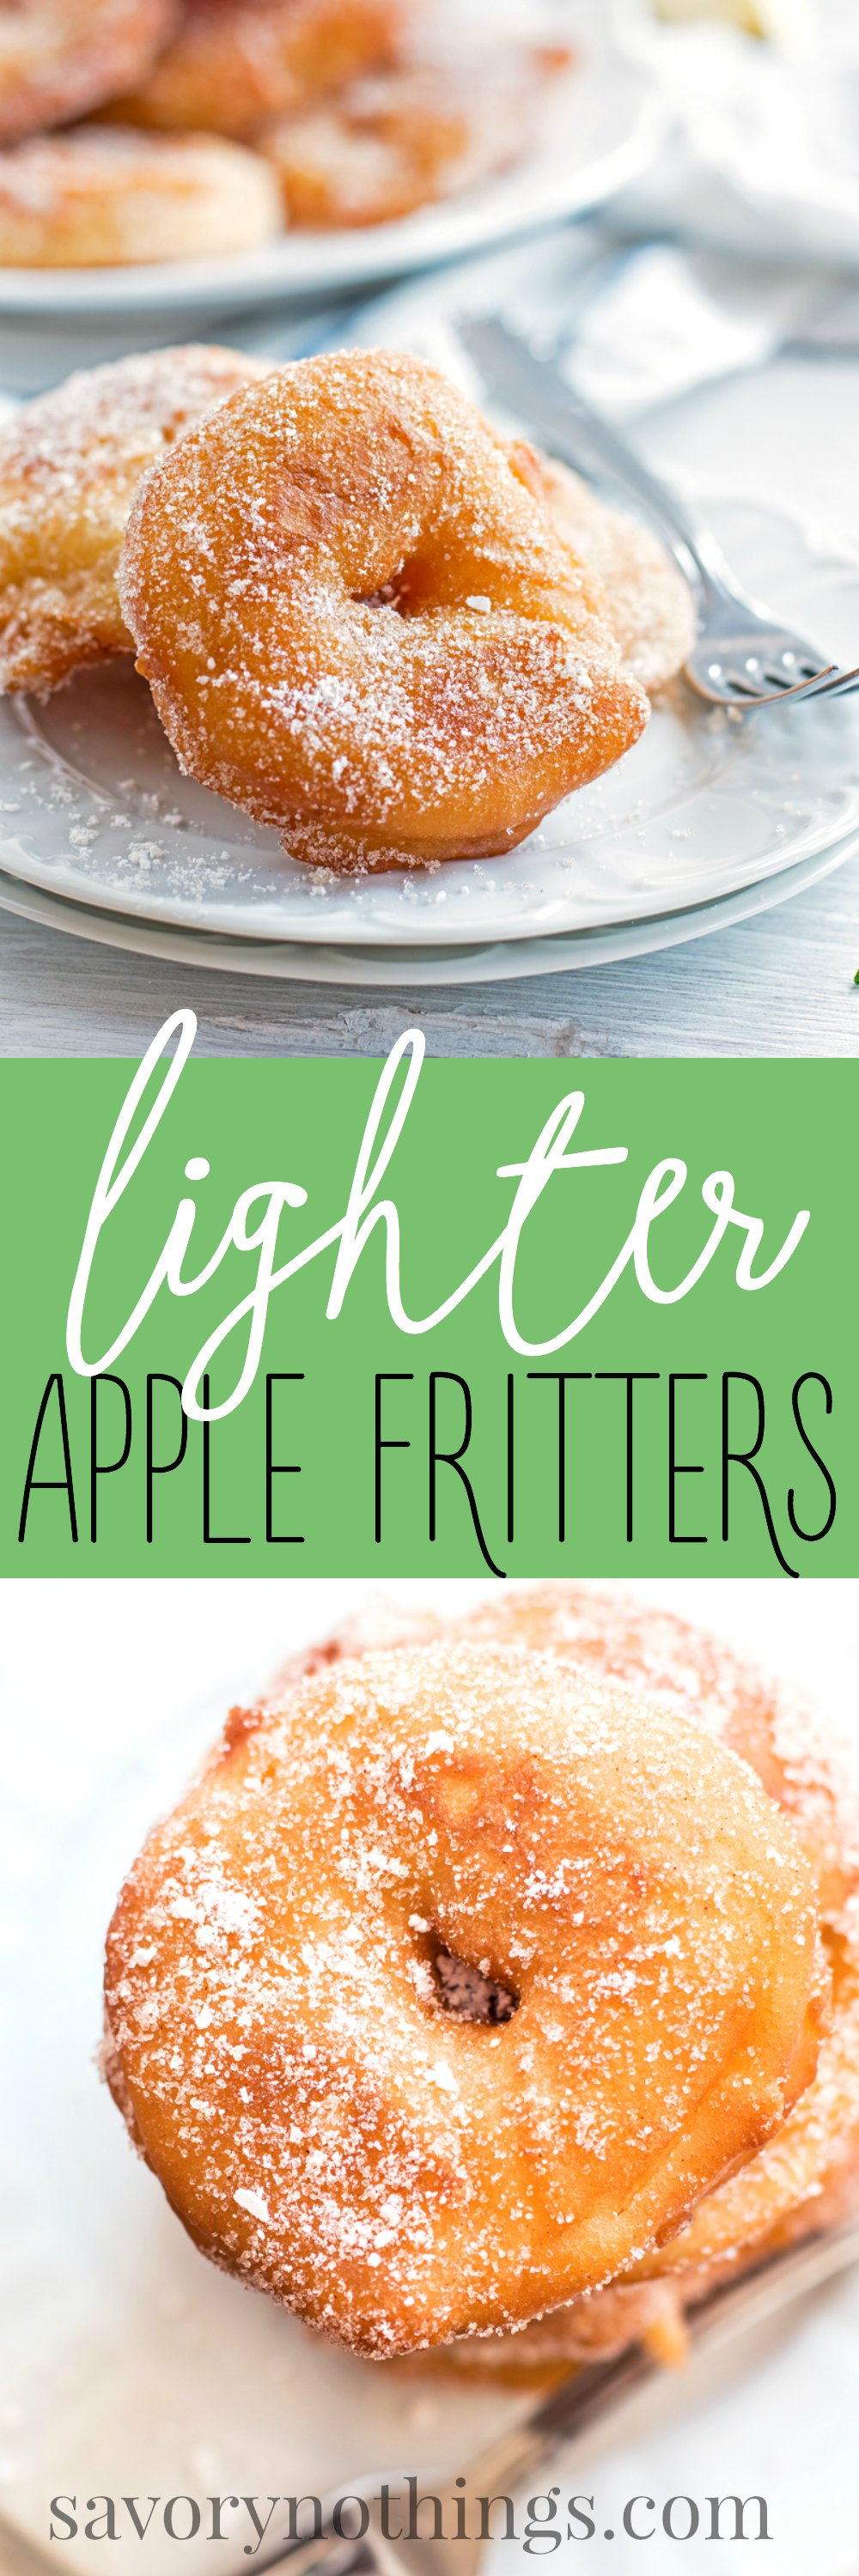 Enjoy This Lighter Apple Fritters Recipe At Home It S